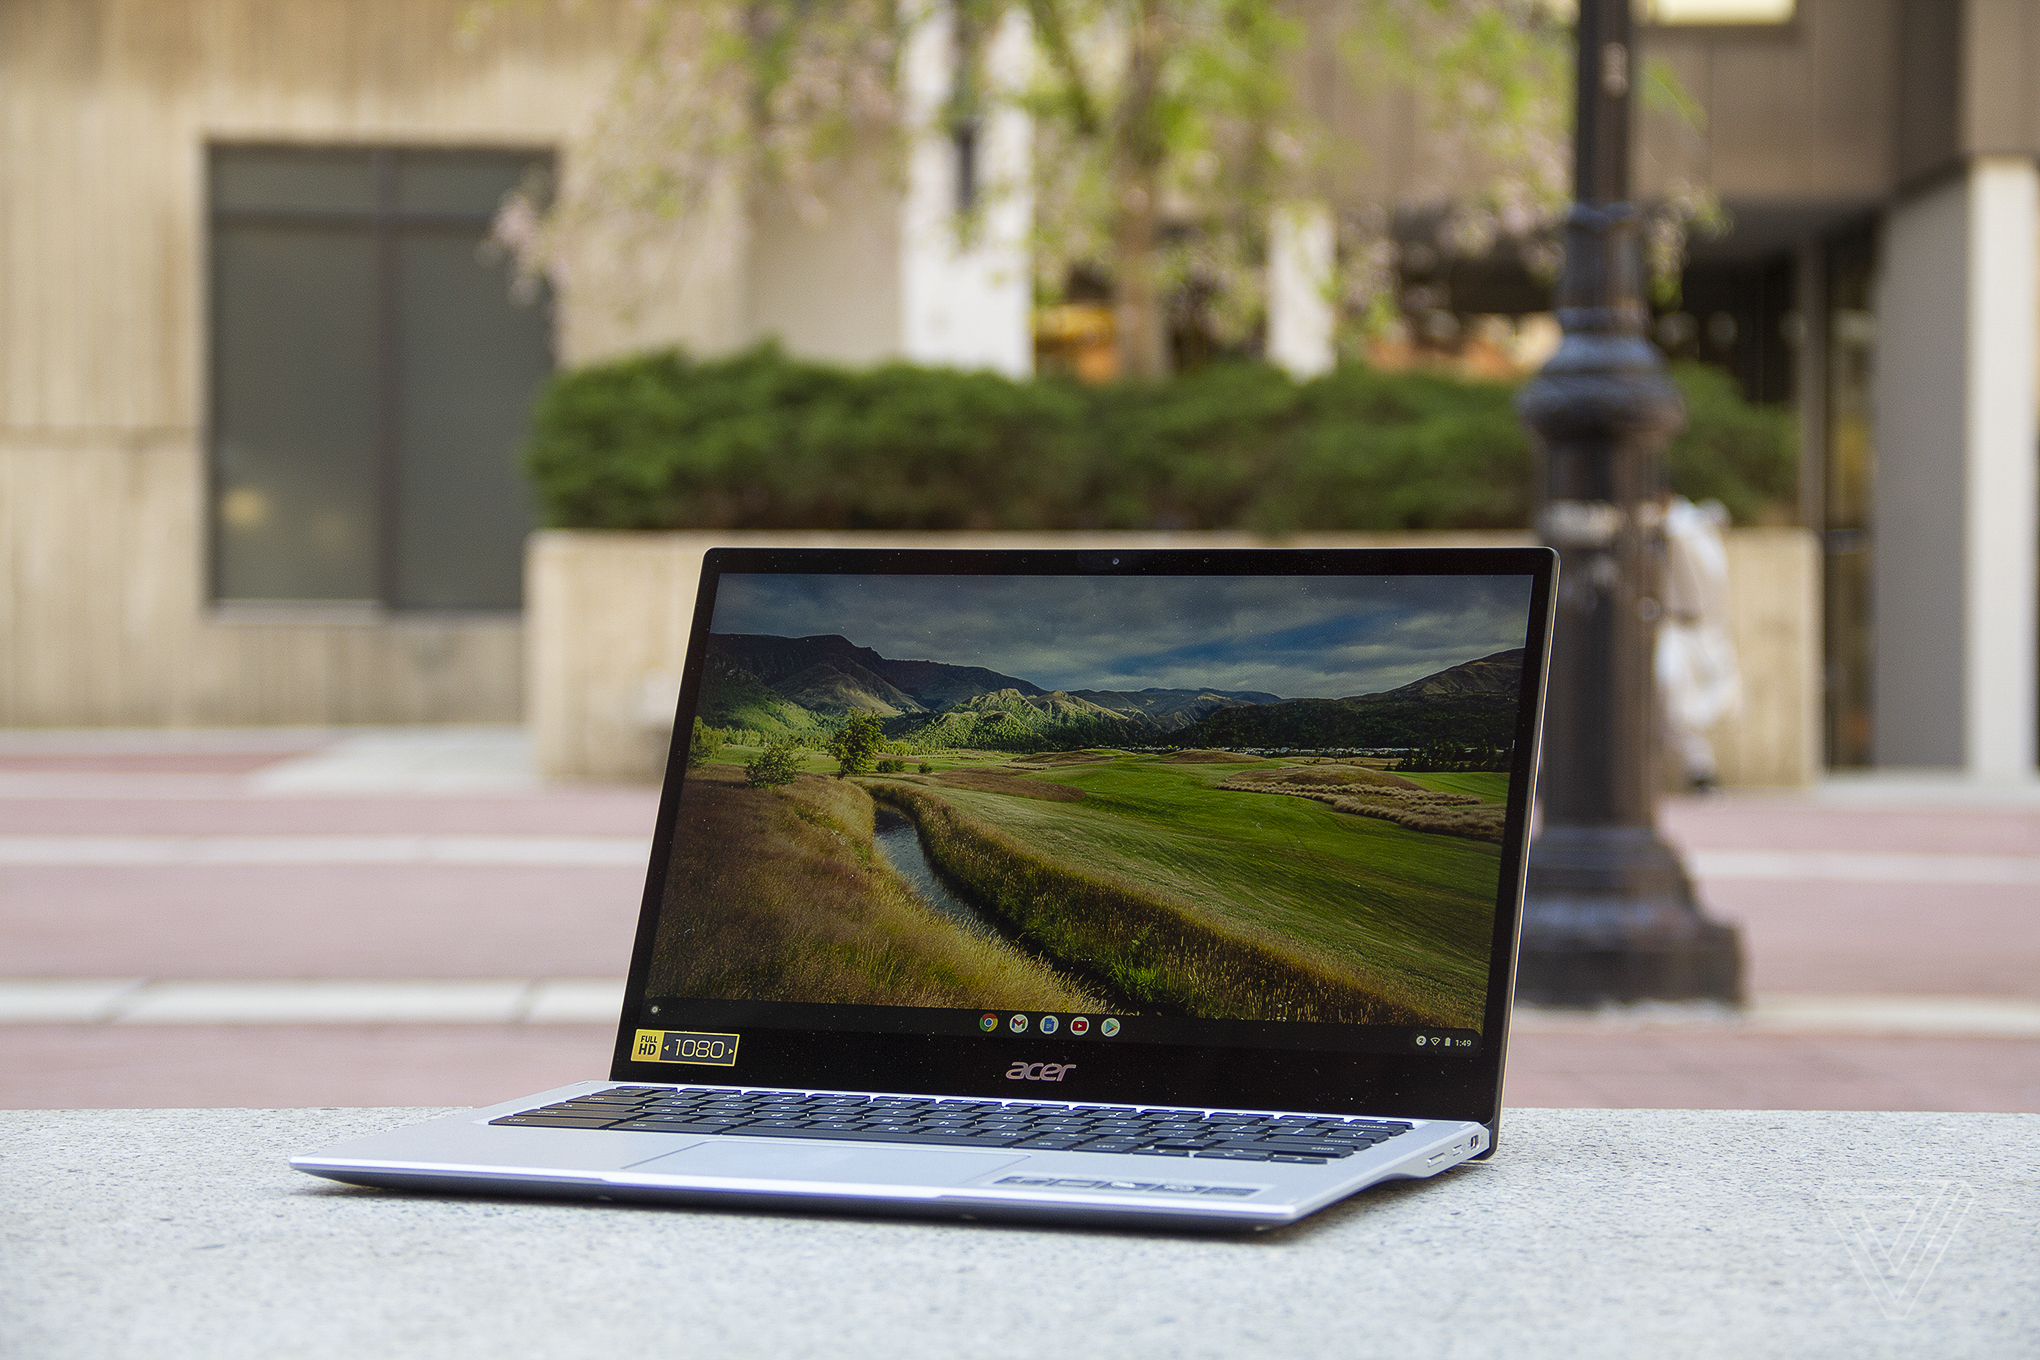 The Acer Chromebook Spin 513 sits on a stone bench, open, angled to the left. The screen displays a pastoral scene.